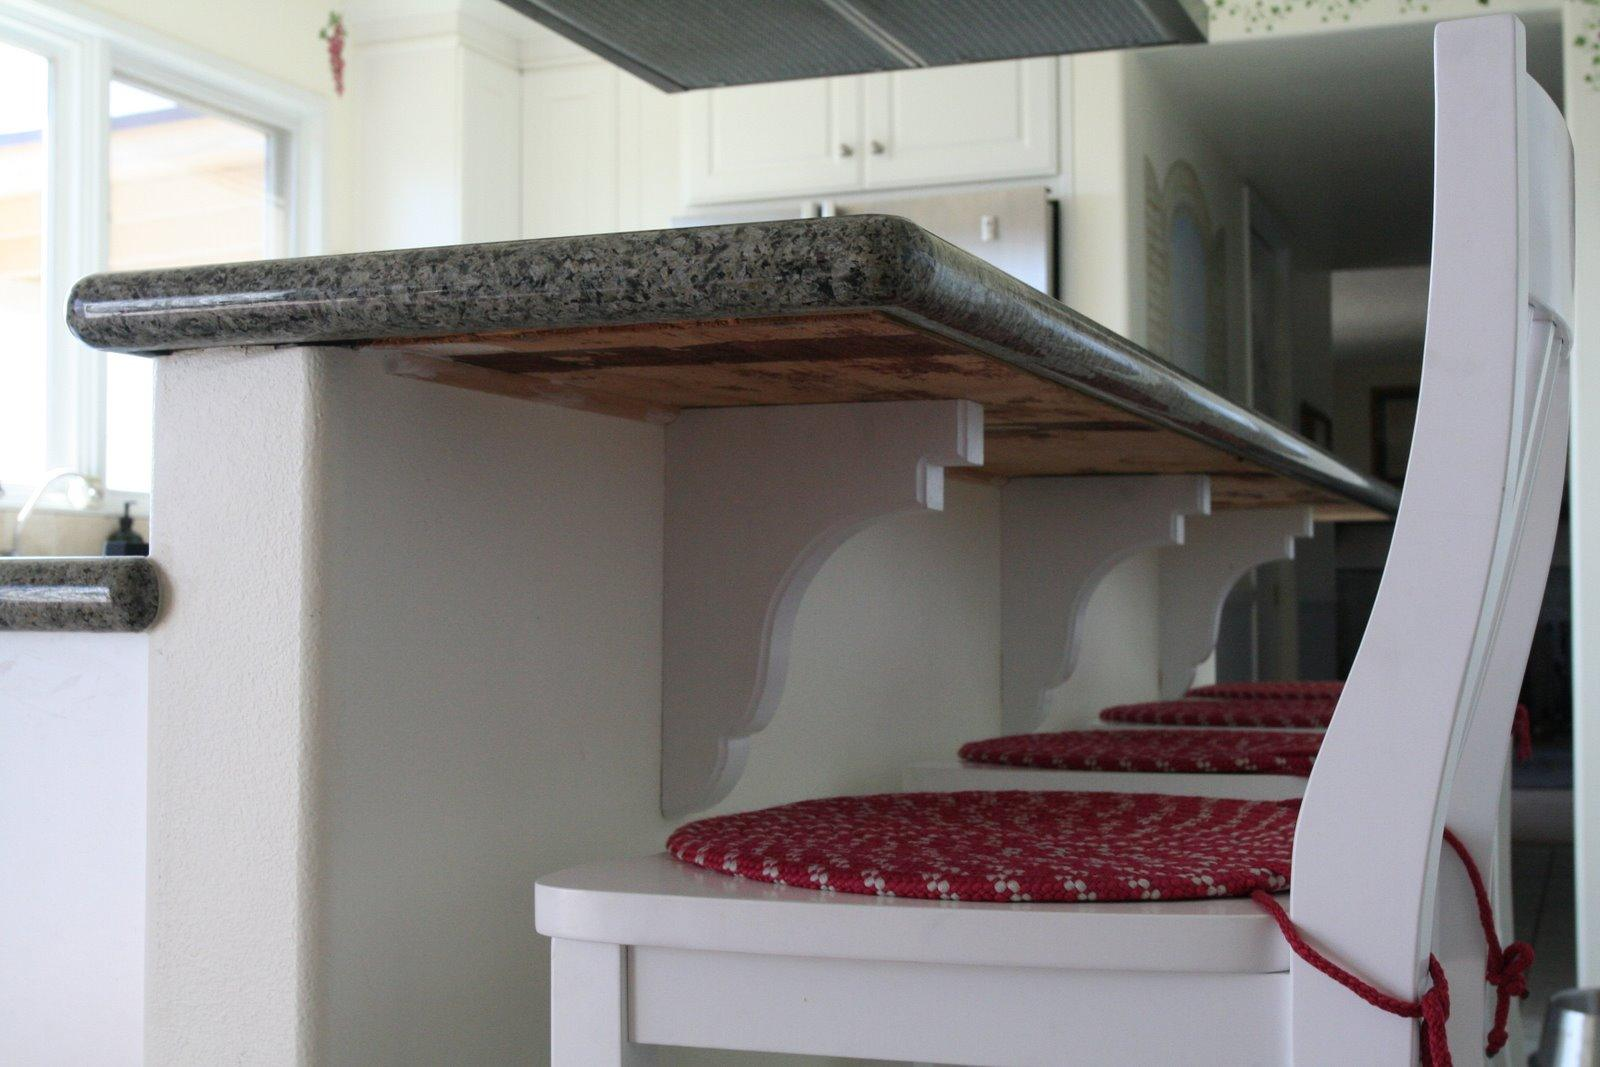 Corbels to supports overhung countertops